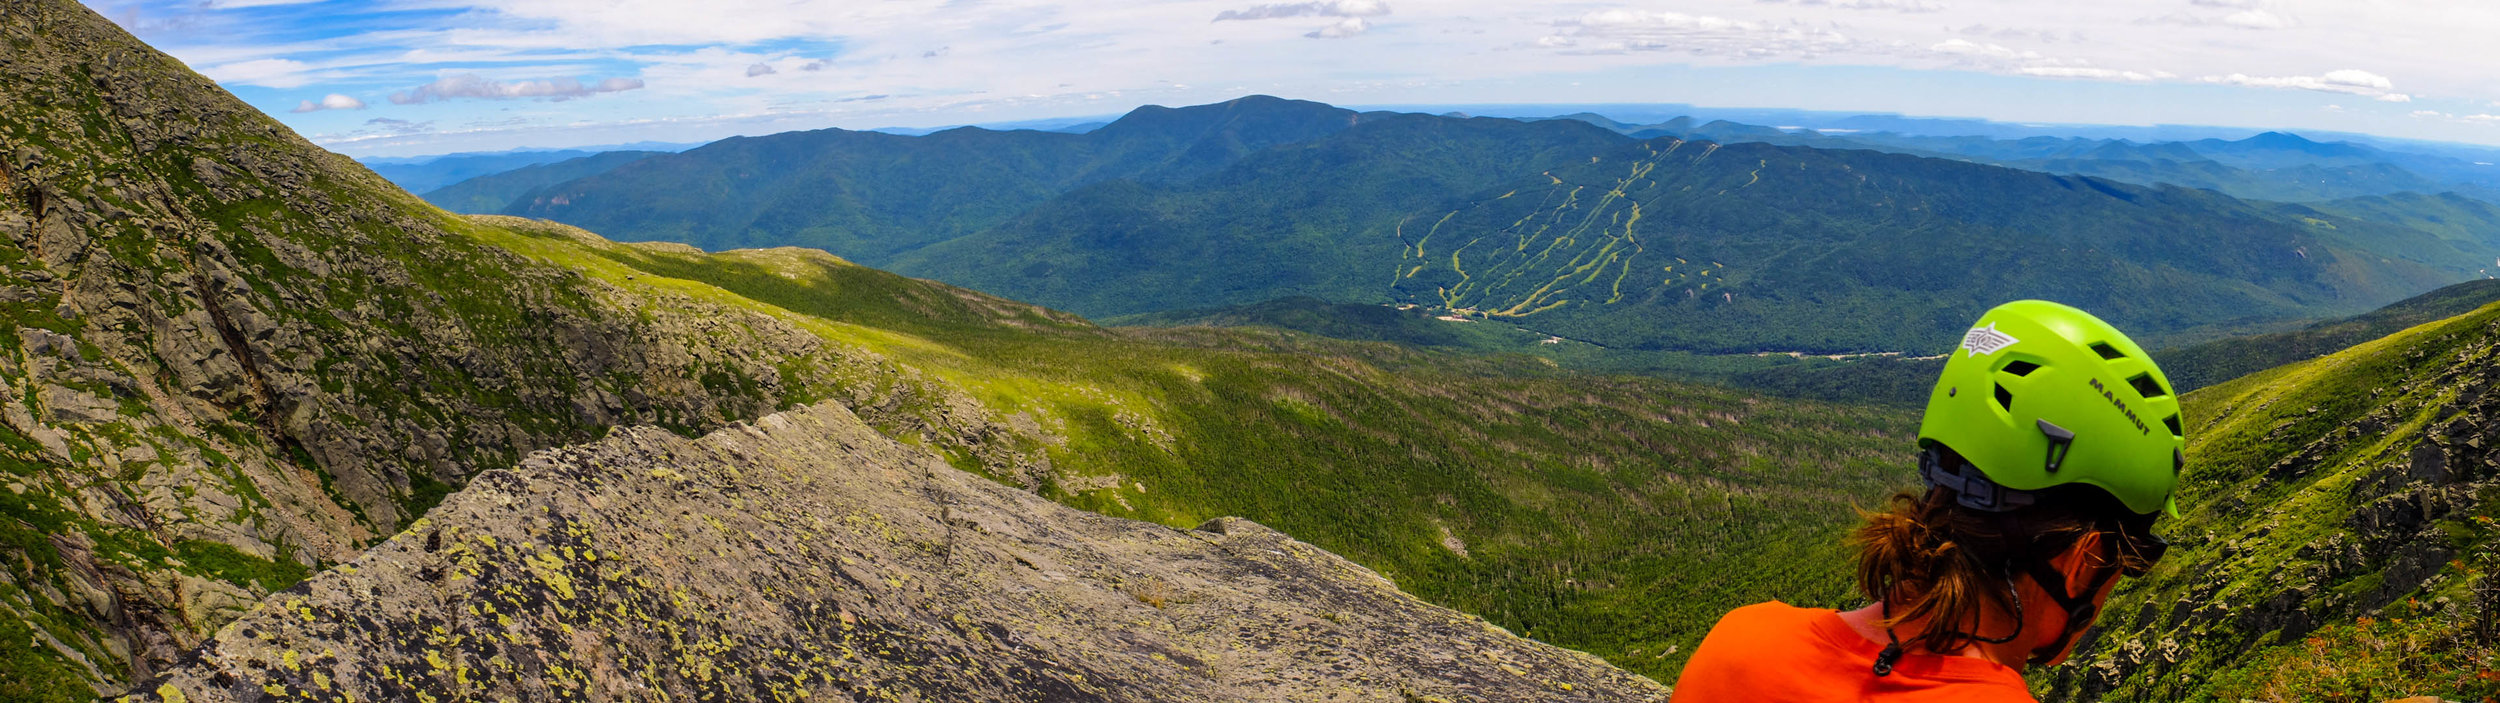 July - Steve admiring the view near the top of the Northeast Ridge of the Pinnacle on Mt. Washington